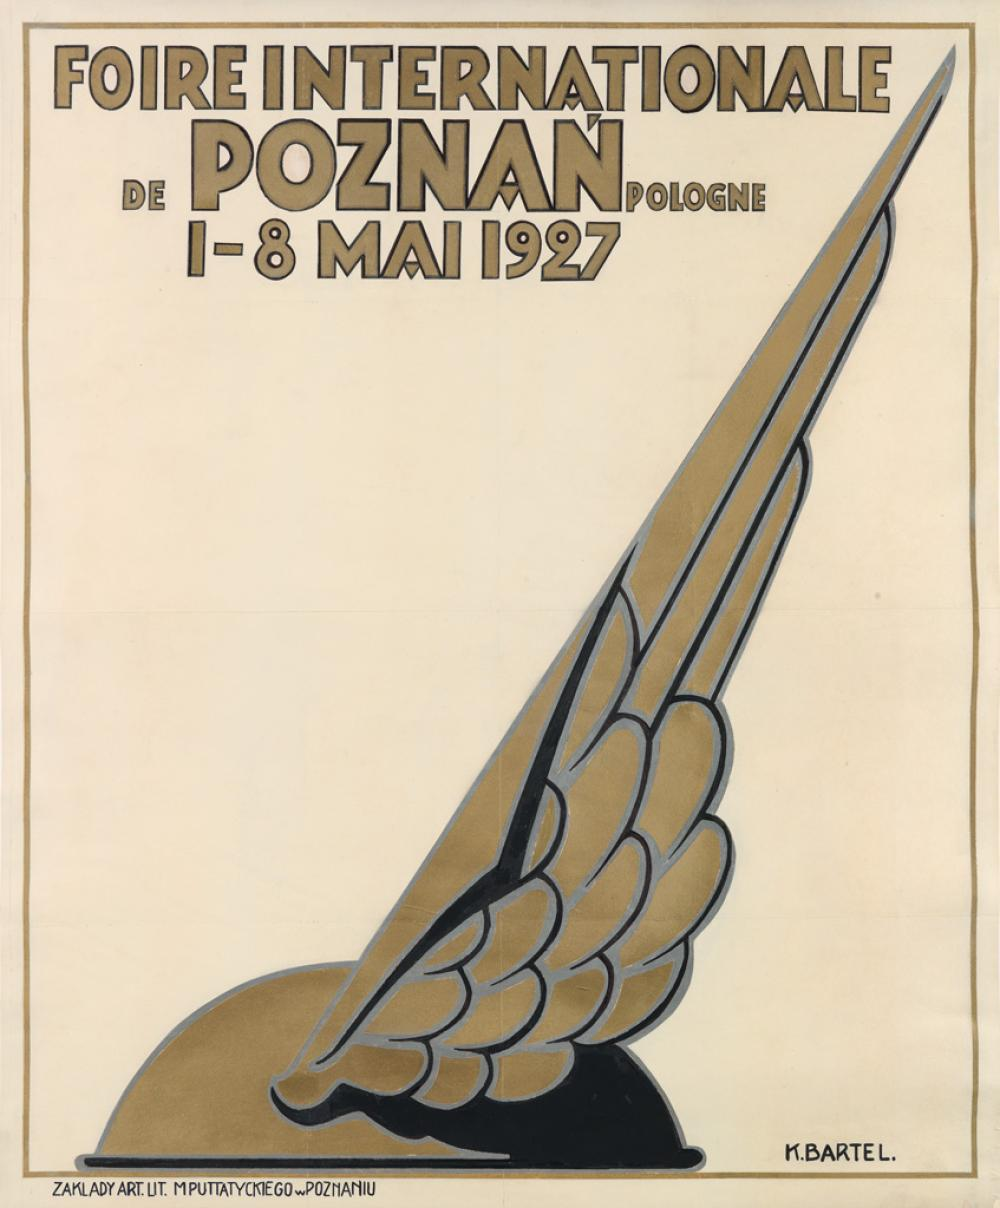 K. BARTEL (DATES UNKNOWN). FOIRE INTERNATIONALE DE POZNAN POLOGNE. 1927. 33x27 inches, 85x70 cm. Zaklady Art Lit., Poznan.